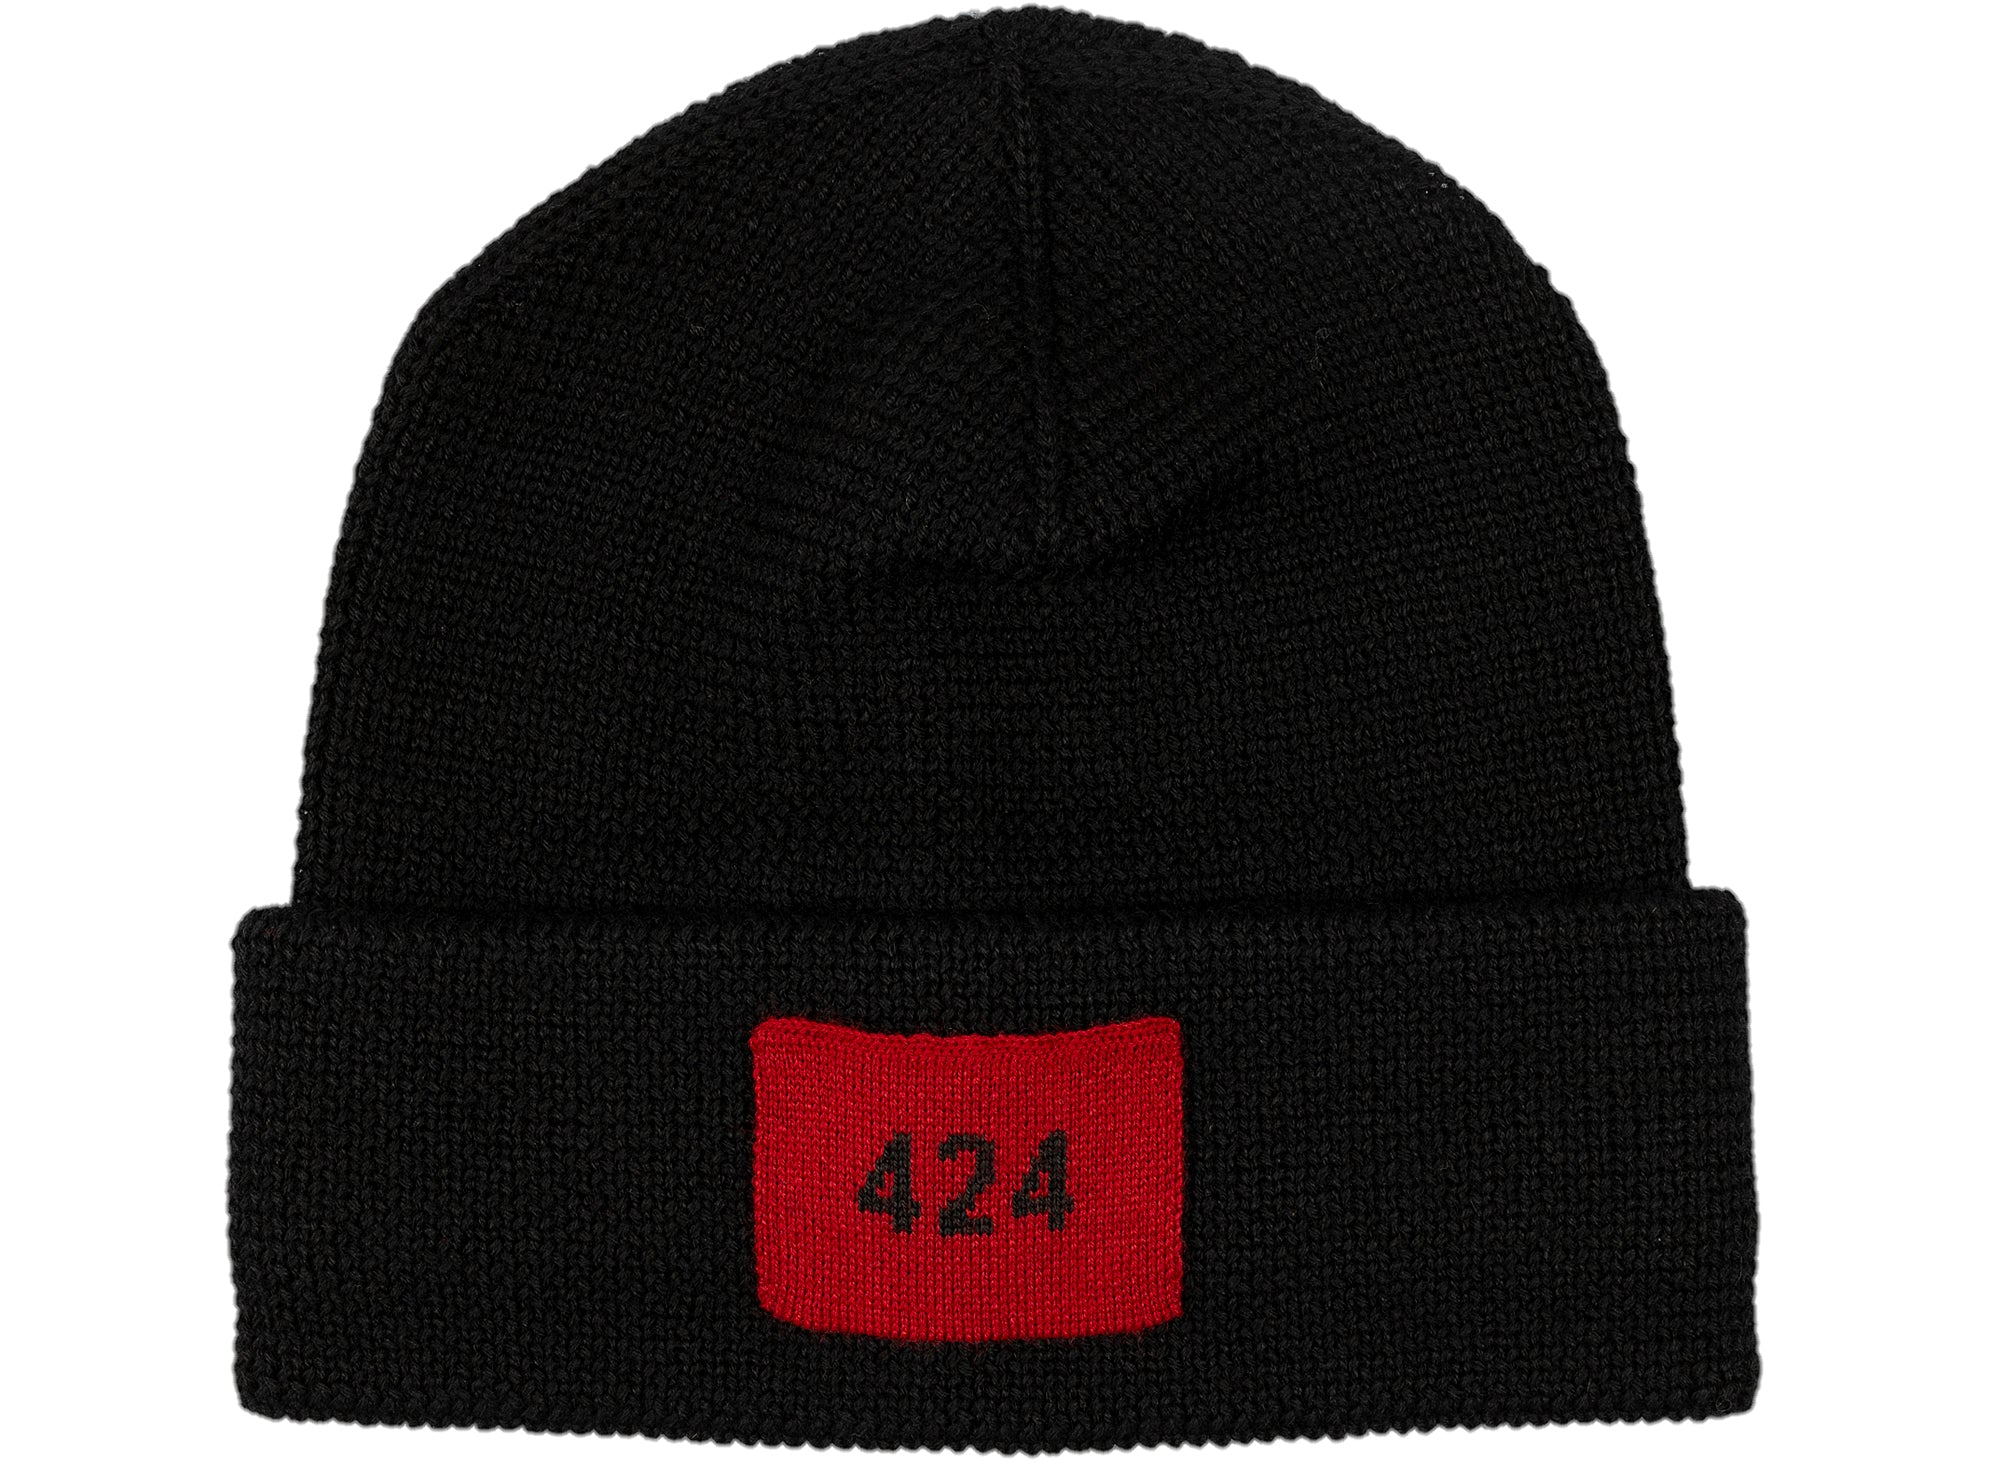 424 Ribbed Hat in Black